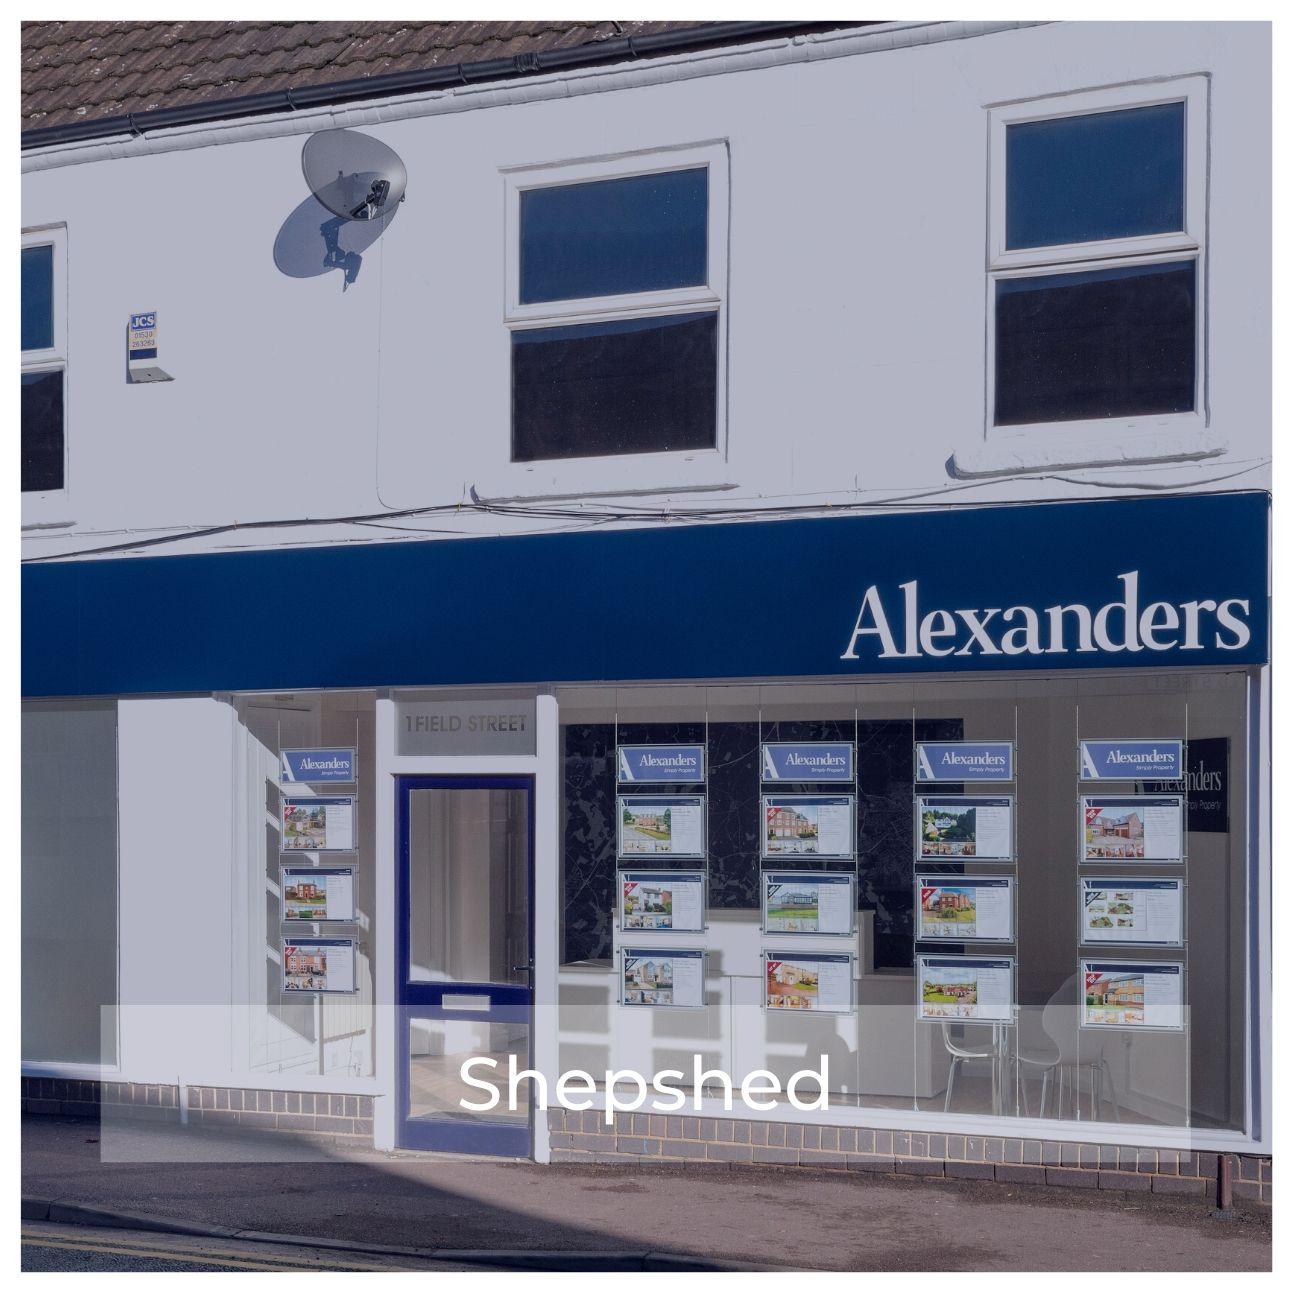 shepshed_office_square_website_